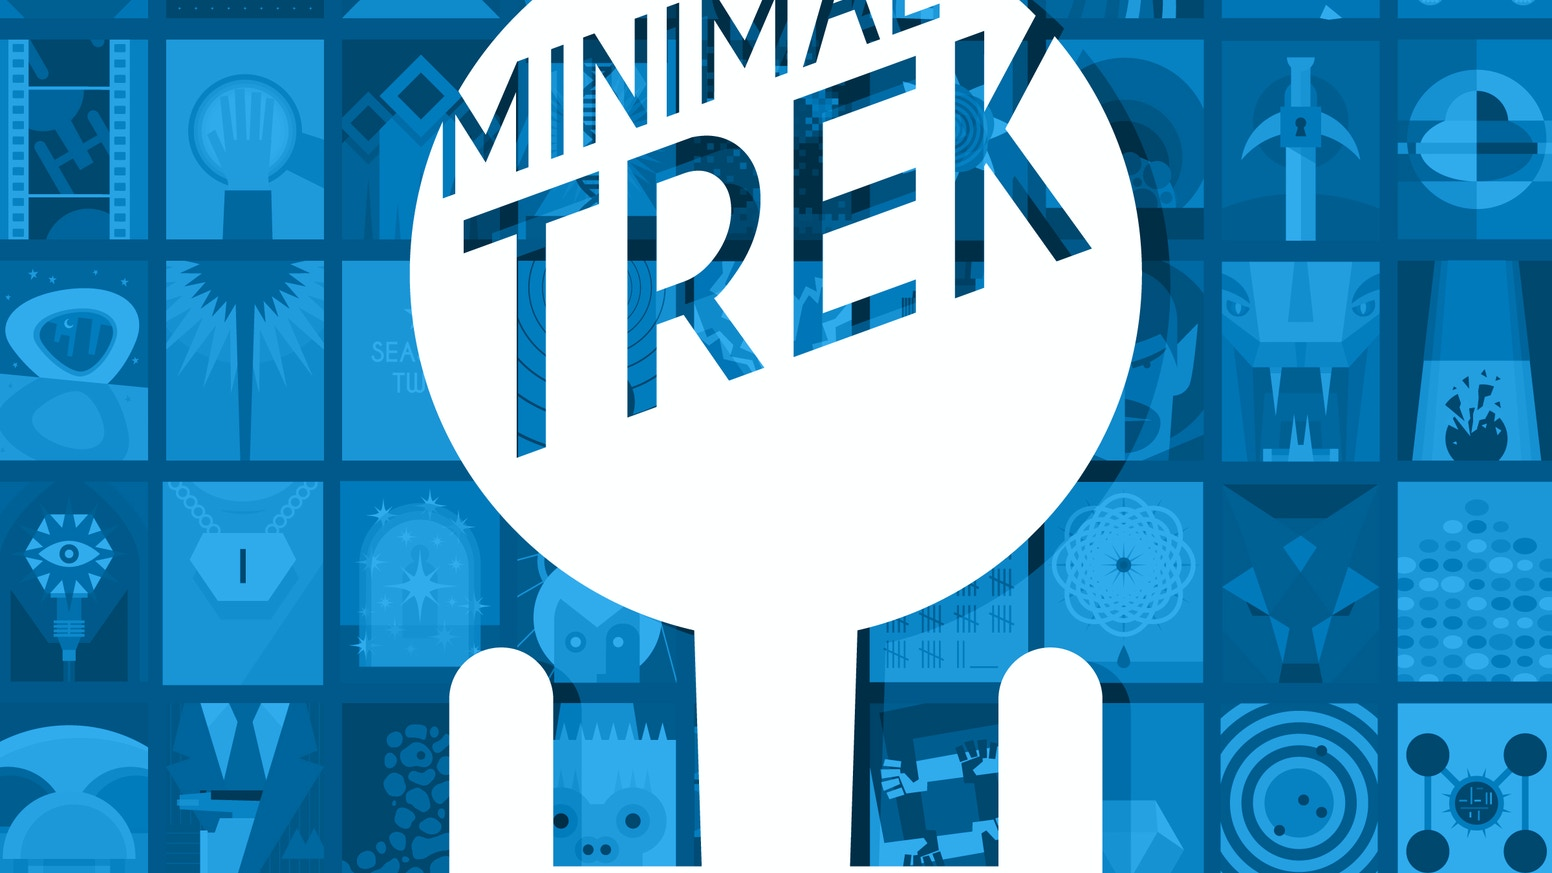 Minimalist poster designs inspired by all 3 seasons of the original Star Trek television series.